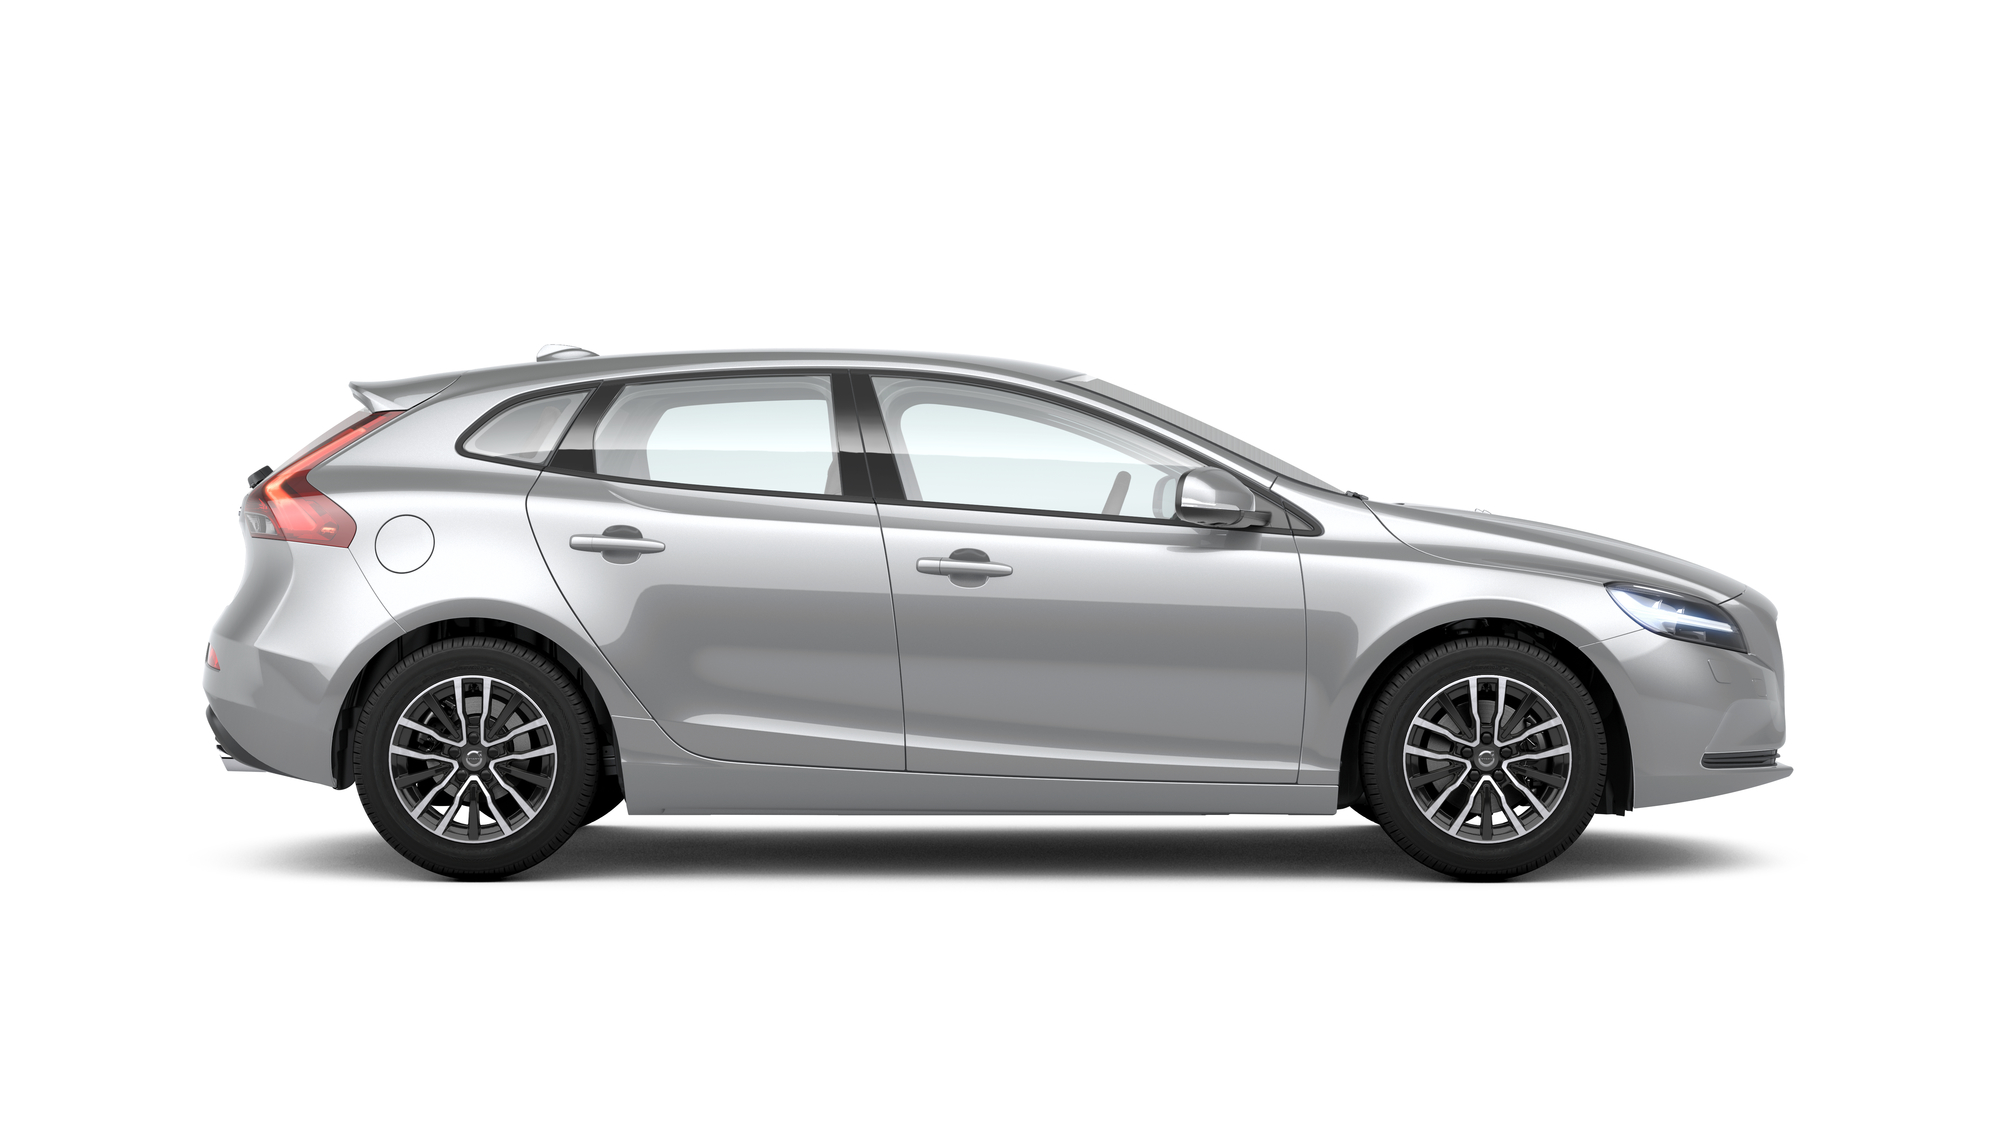 Side photo of the Volvo V40 in Bright Silver